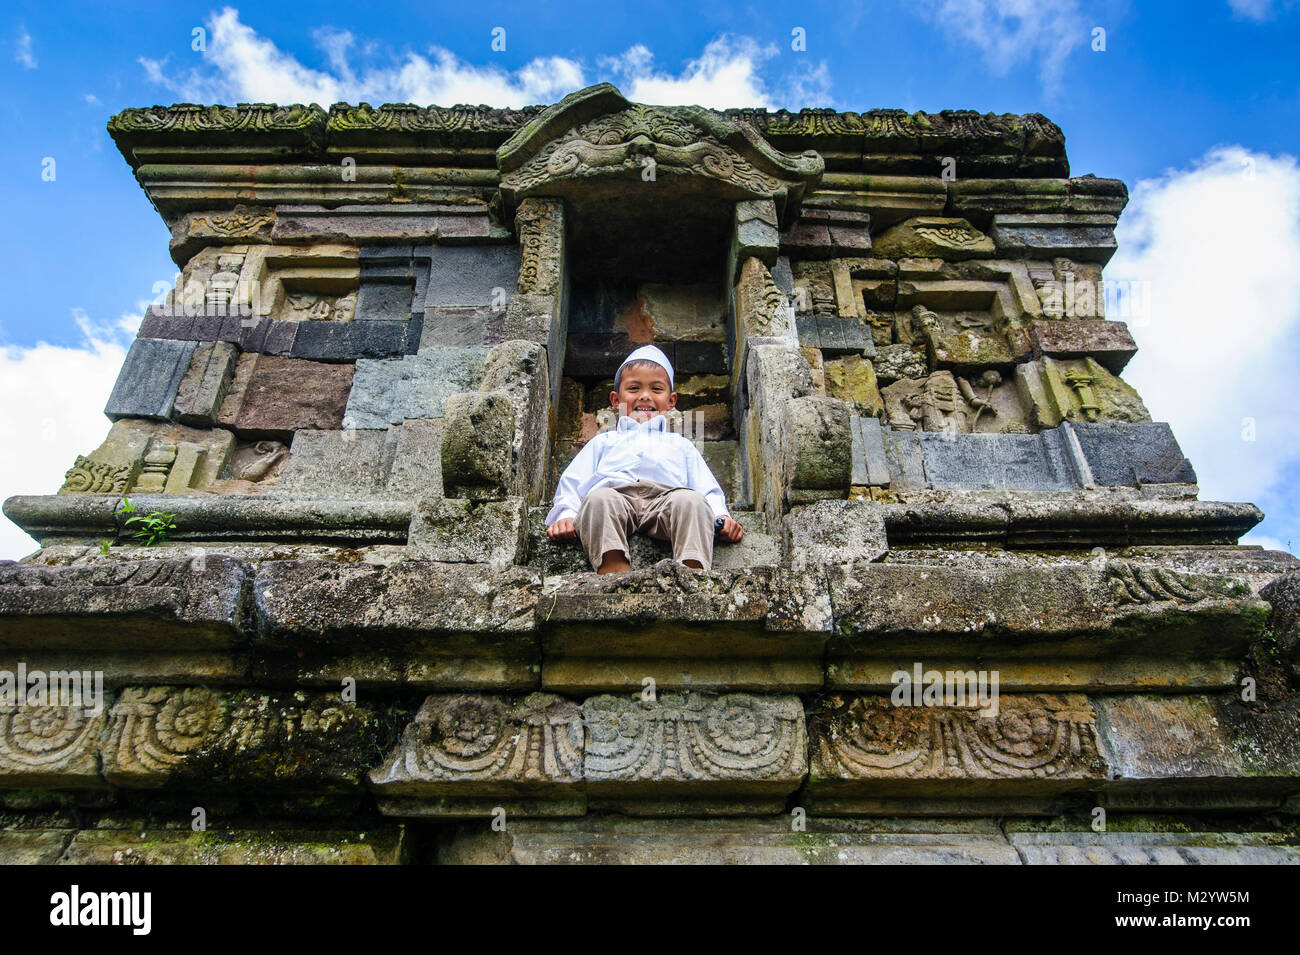 Young boy sitting in a temple of the Arjuna Hindu Dieng temple complex , Dieng Plateau, Java, Indonesia - Stock Image